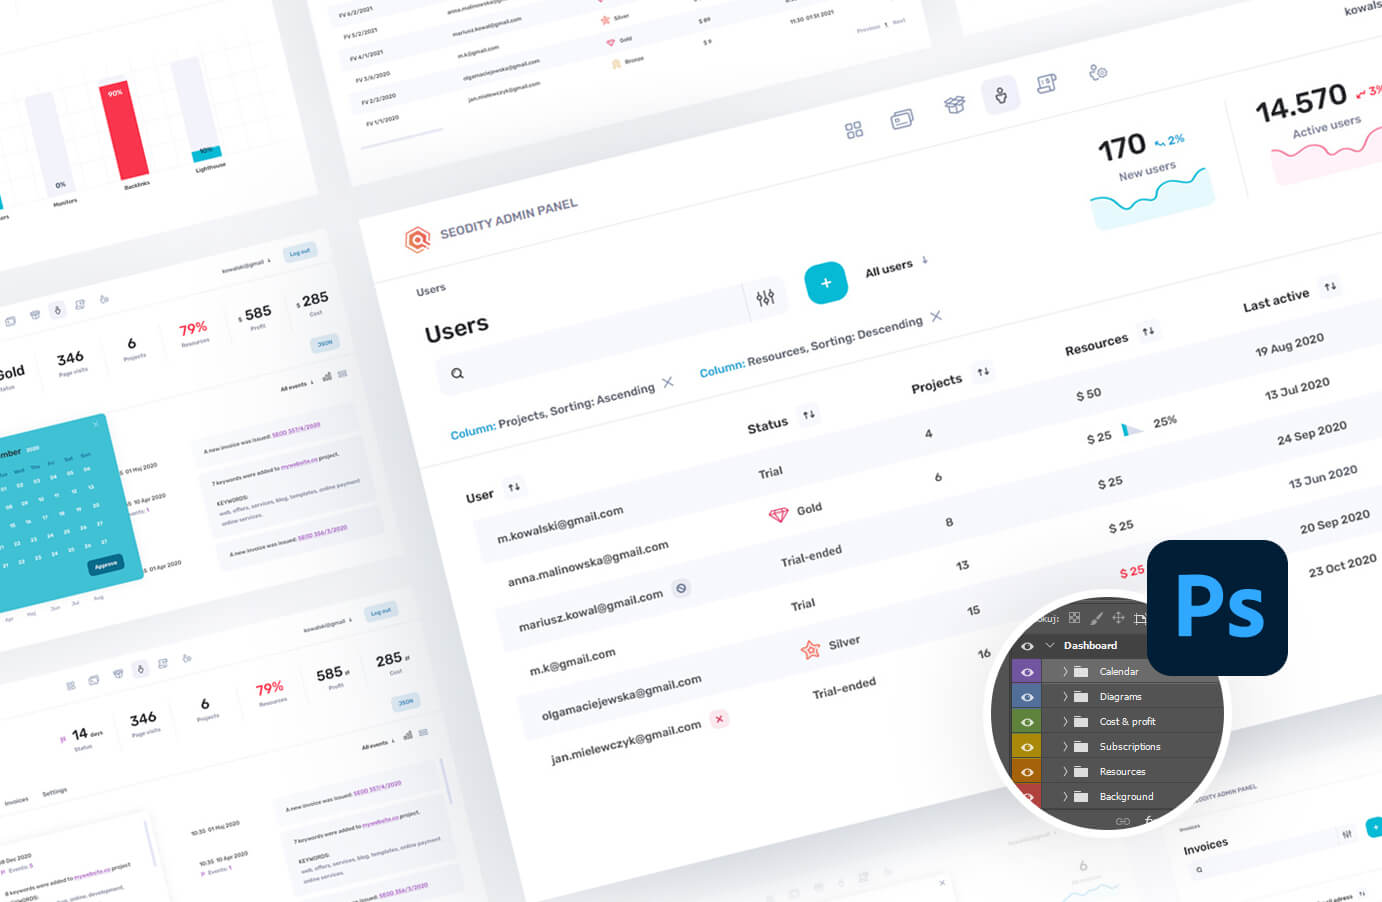 Free admin panel with list of users view.